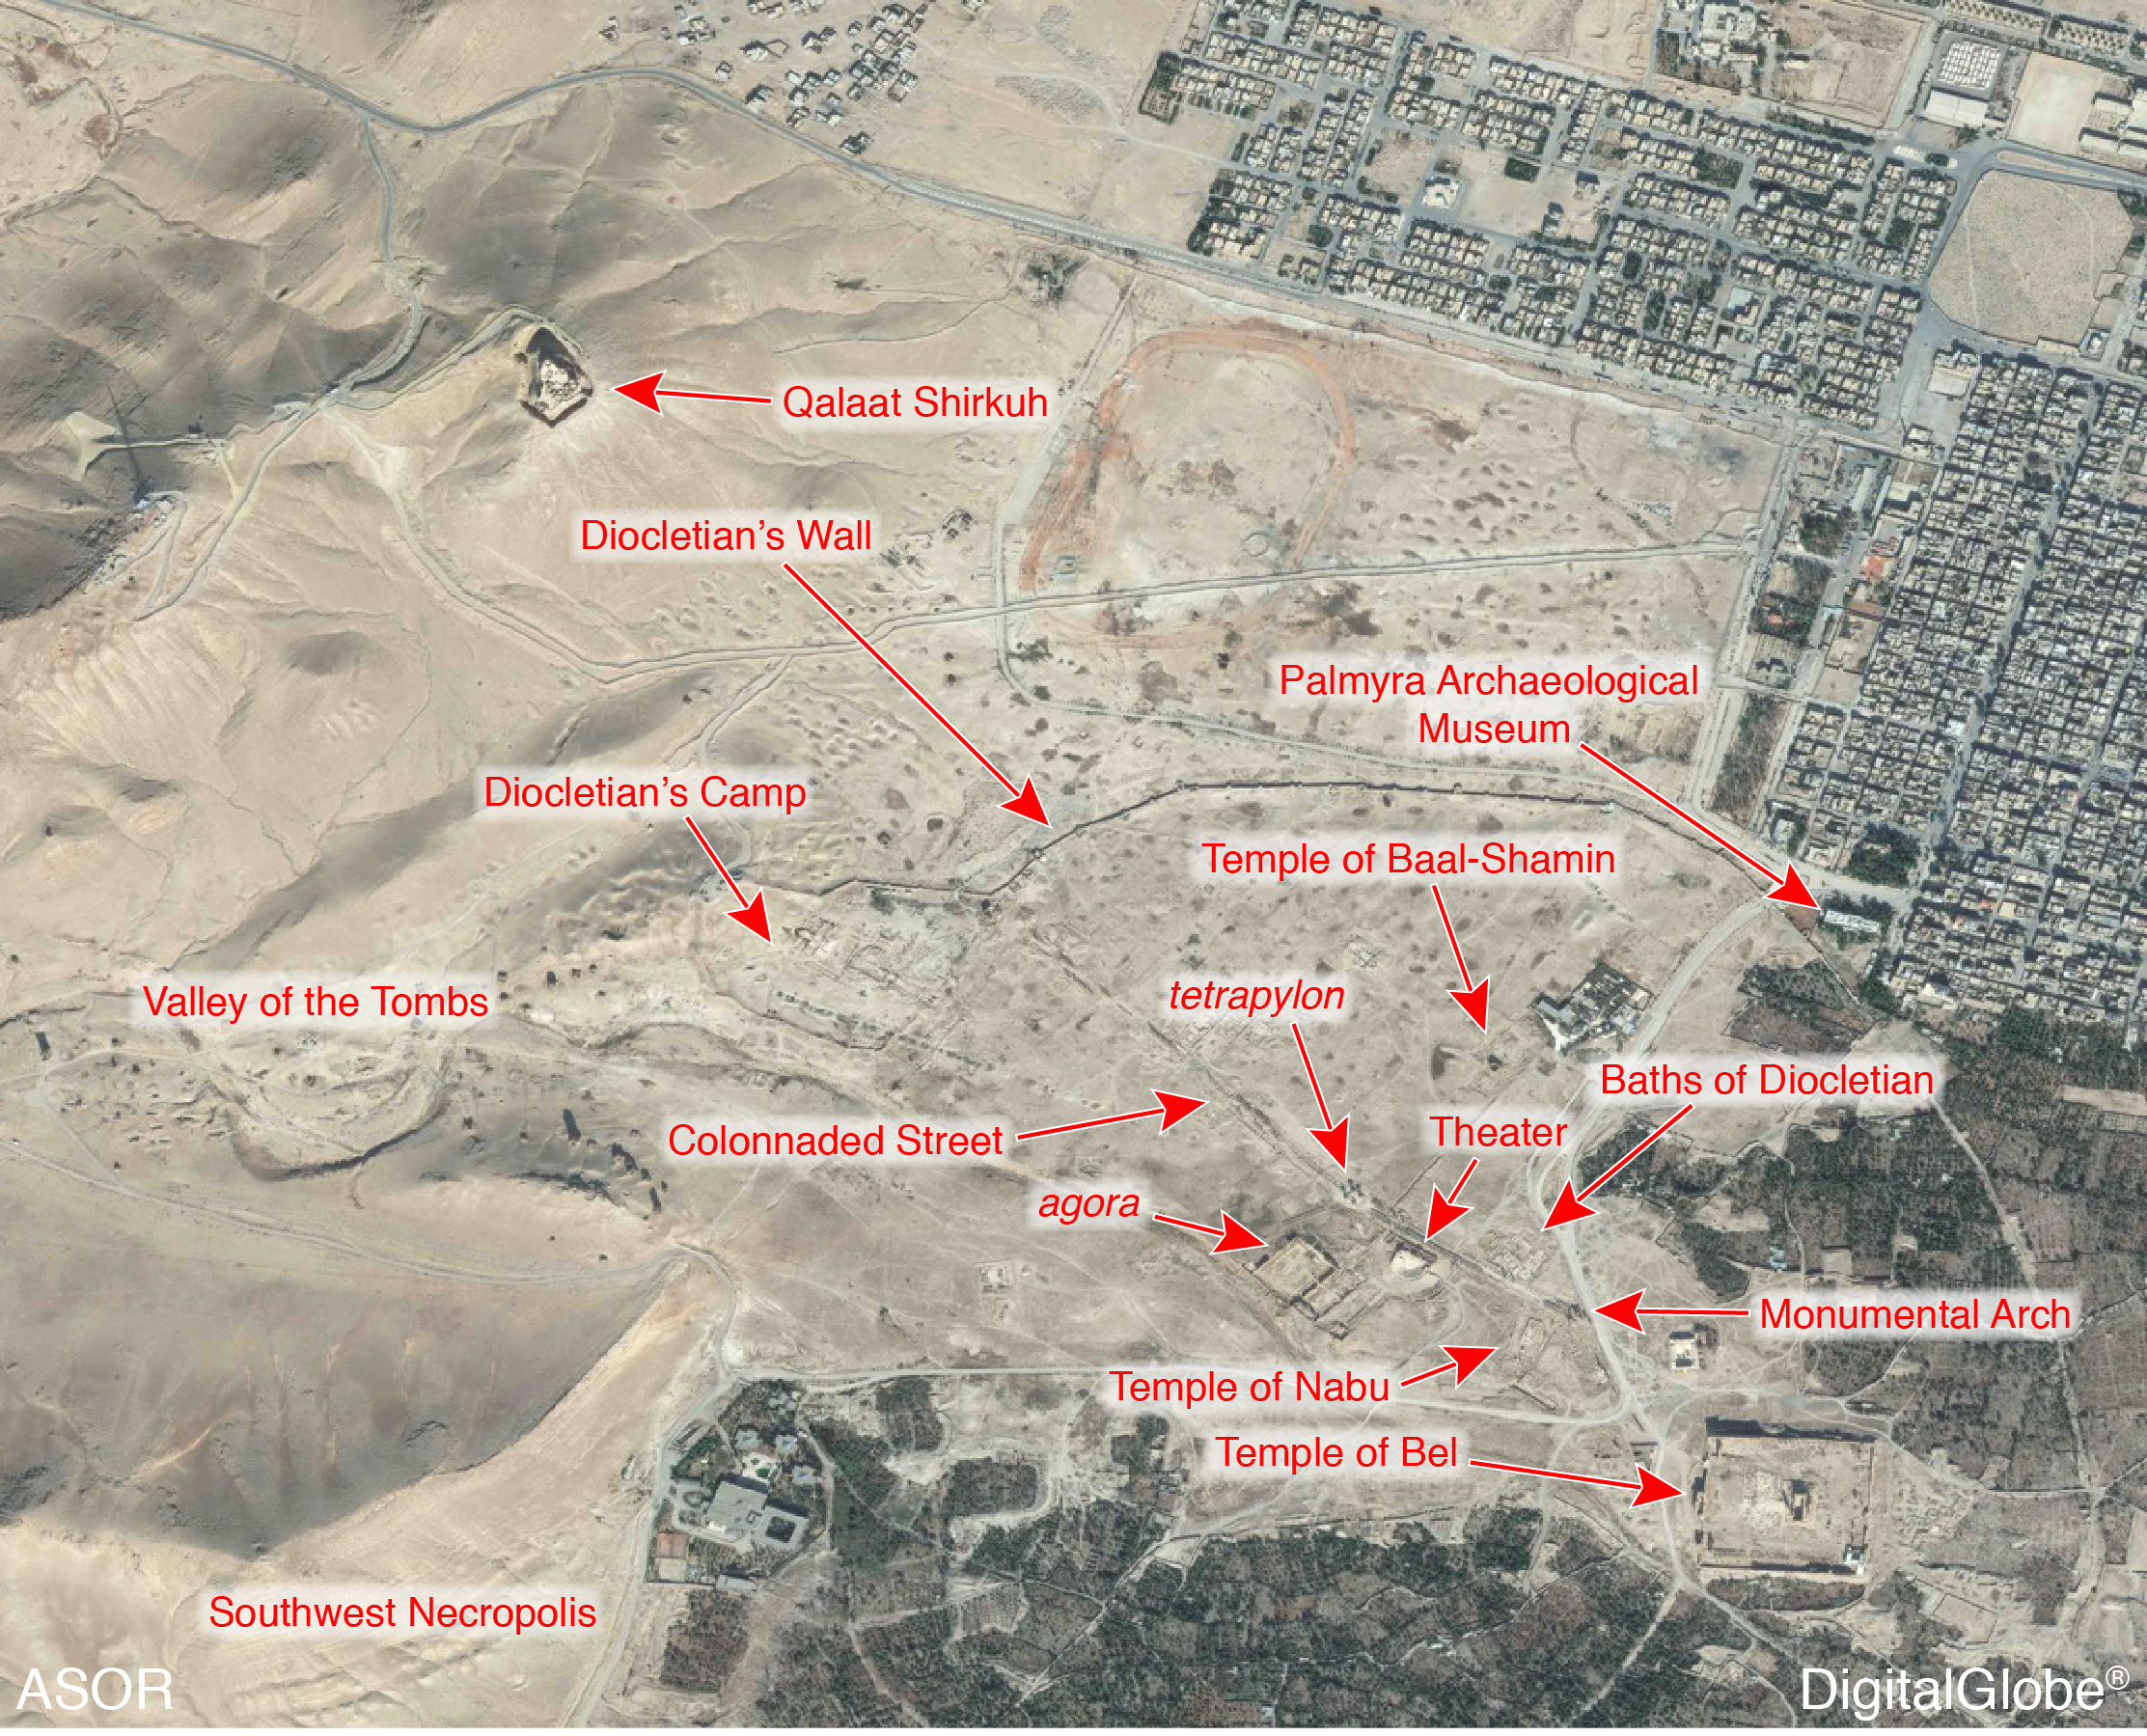 Figure 2: Satellite image showing ancient city of Palmyra with key monuments labeled (ASOR CHI; DigitalGlobe, taken October 26, 2014)